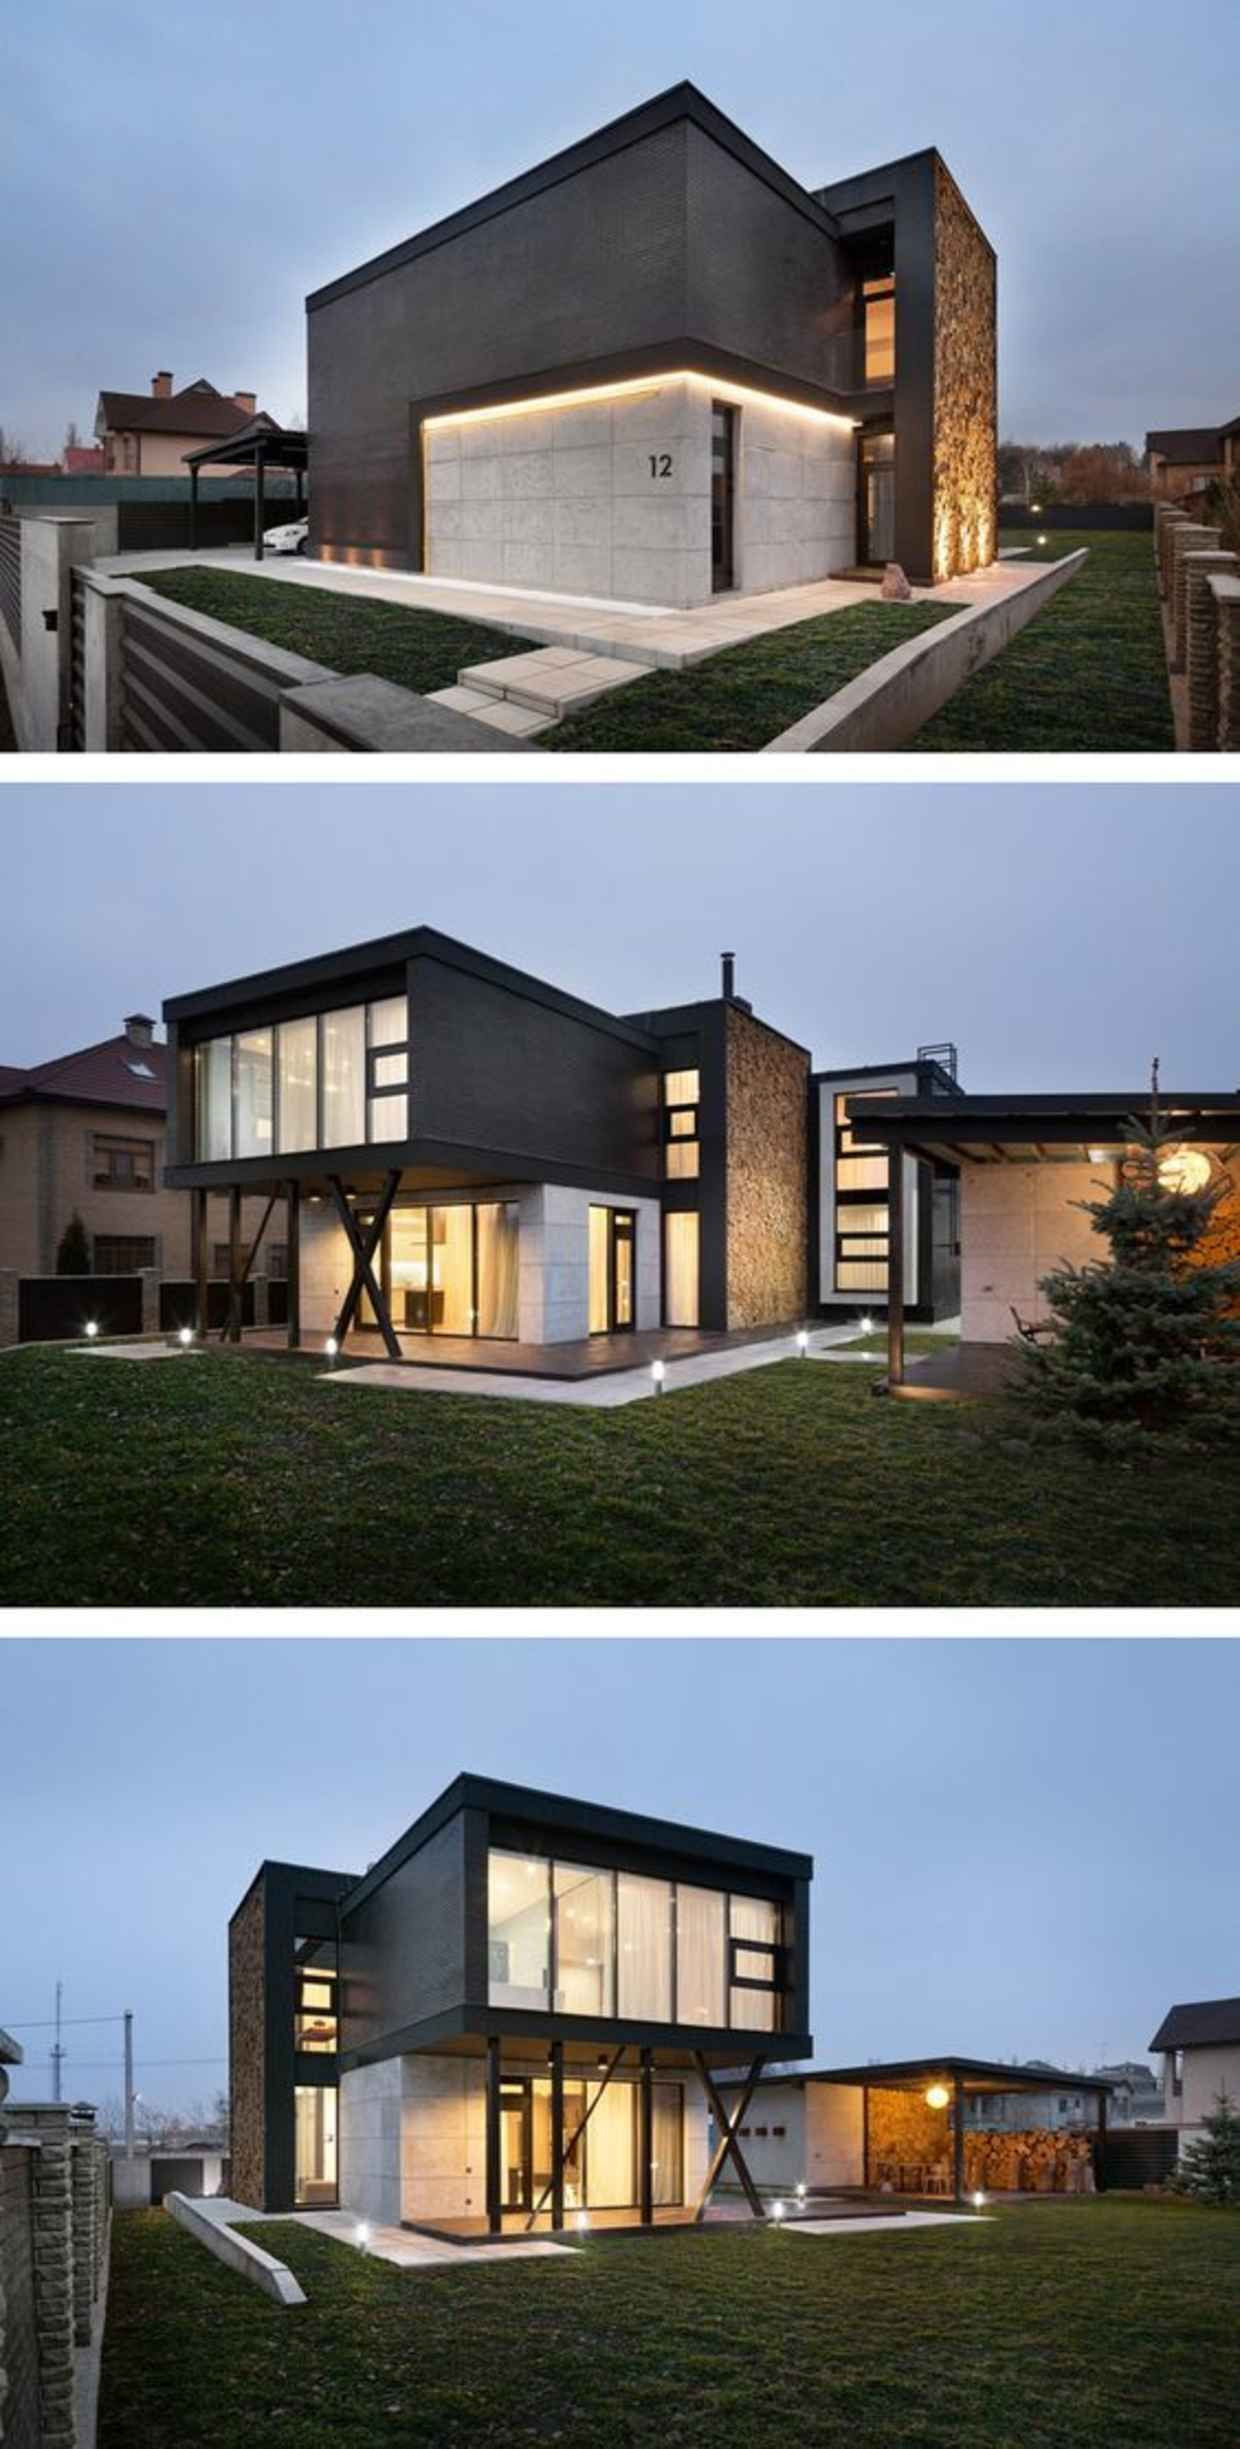 Best Small House Designs In the World Lovely 11 Of the Biggest House In the World Most Expensive House